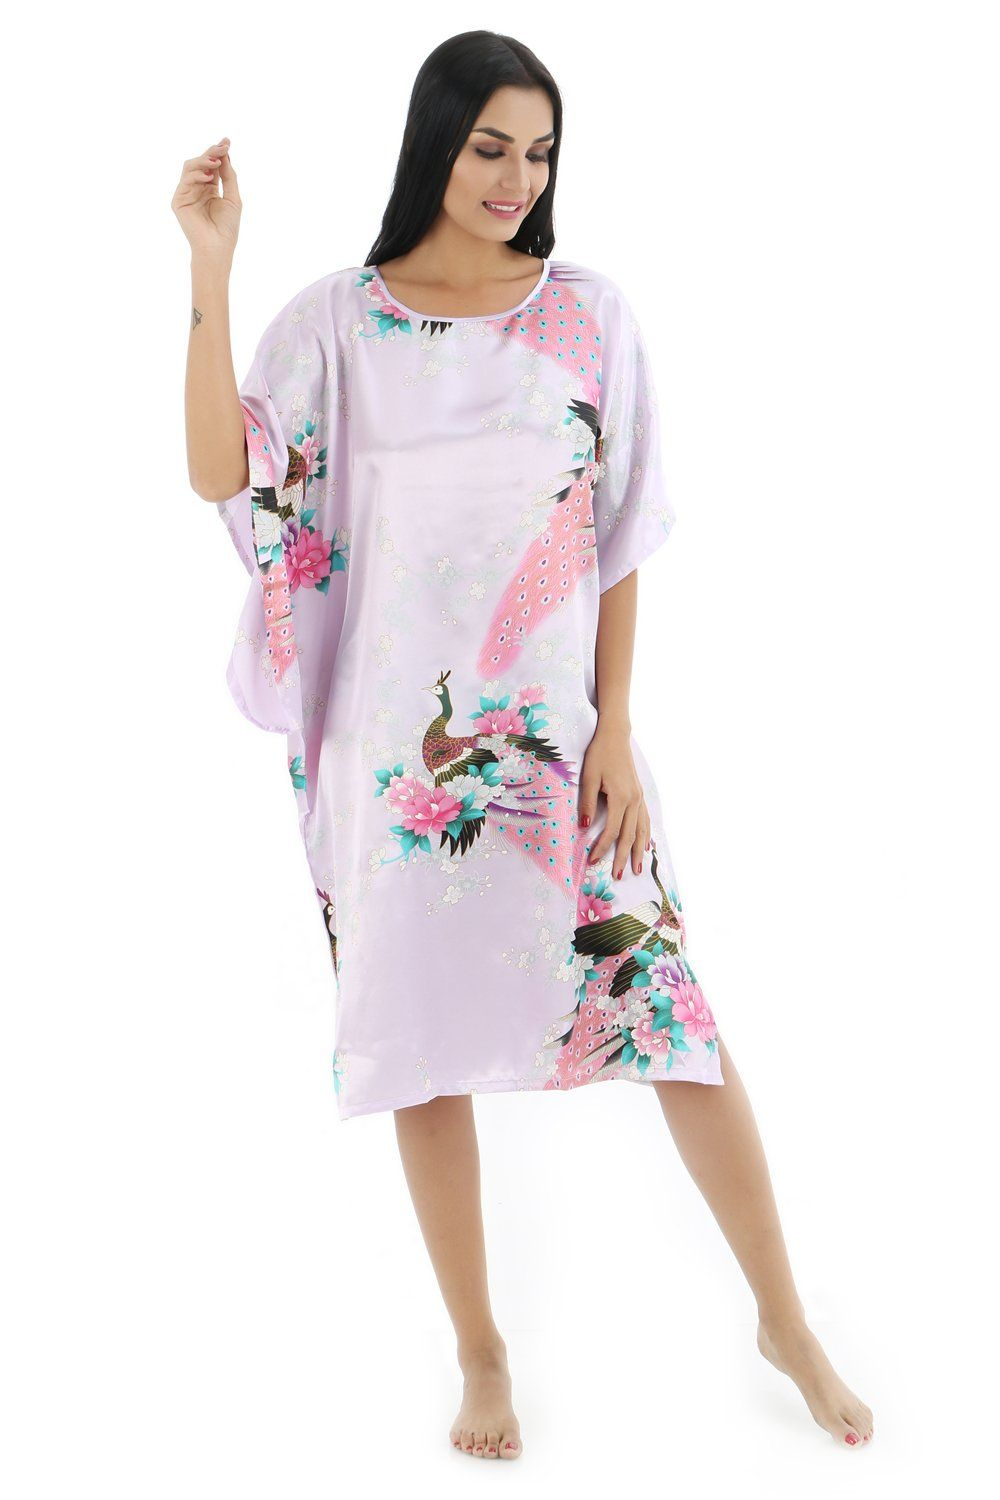 SexyTown Women s Batwing Sleeve Pullover Nightgown Satin Plus Size Pajamas  (Style2-Peacock Light Purple) e395d5f23